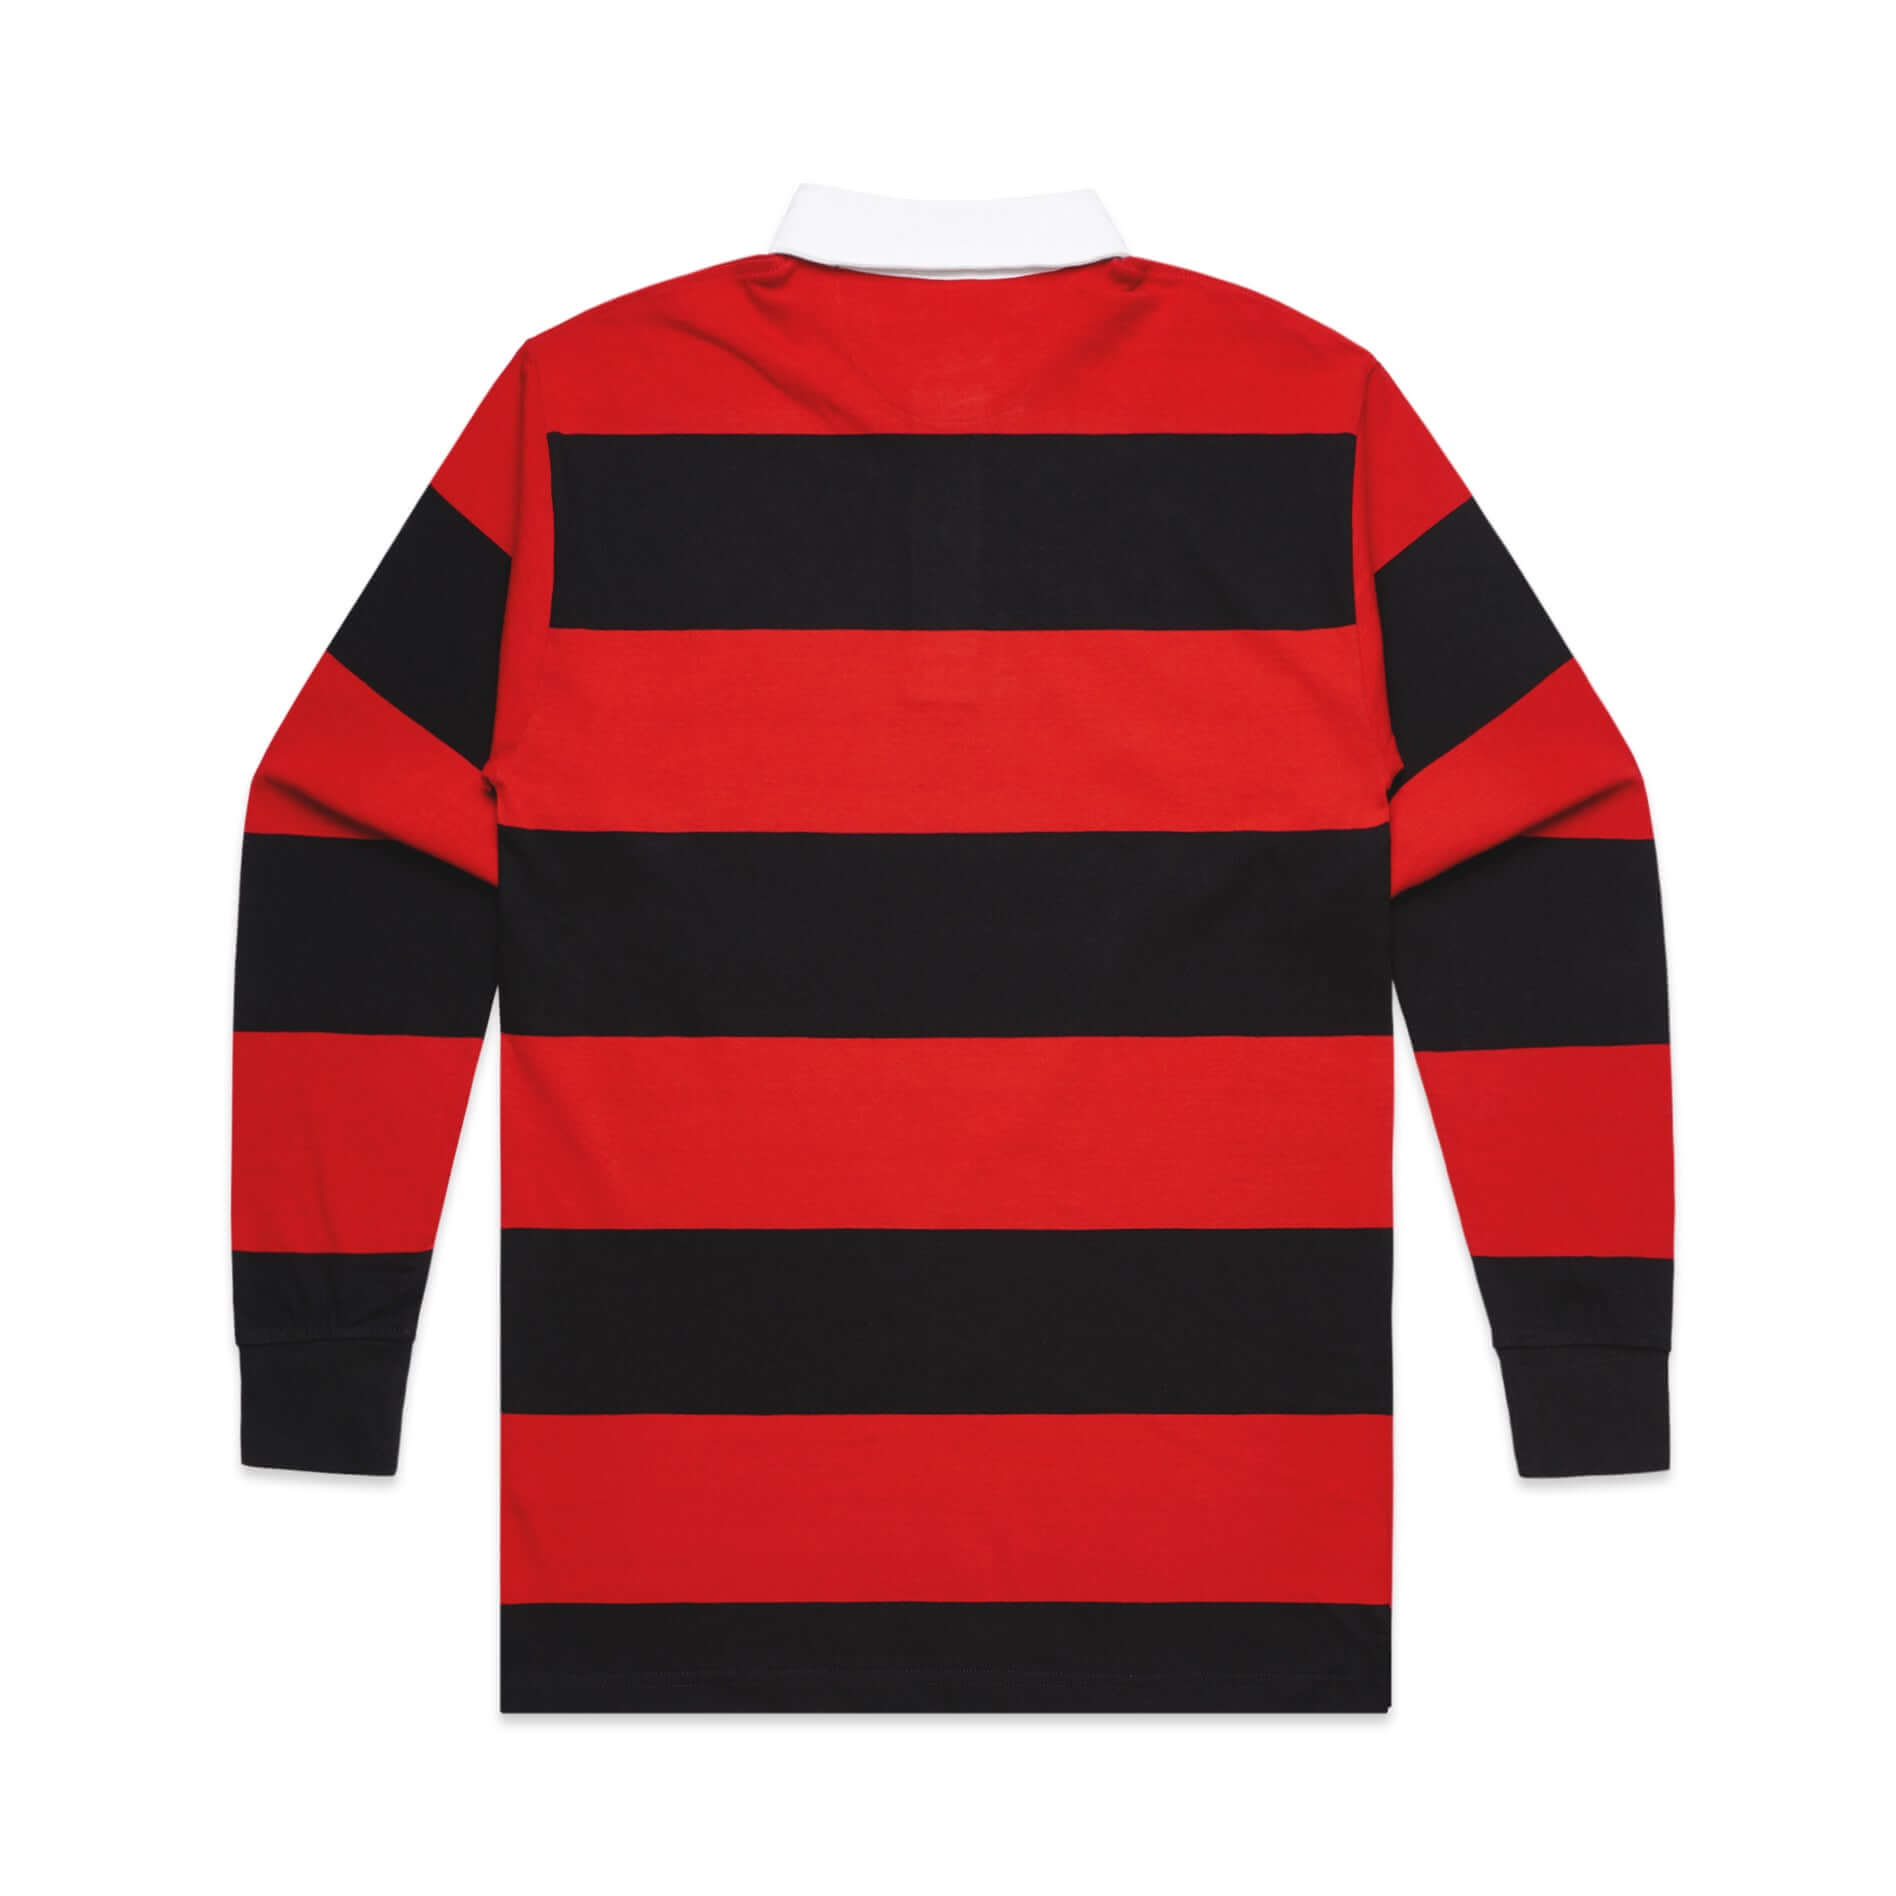 AS Colour RUGBY JERSEY - Black/Red